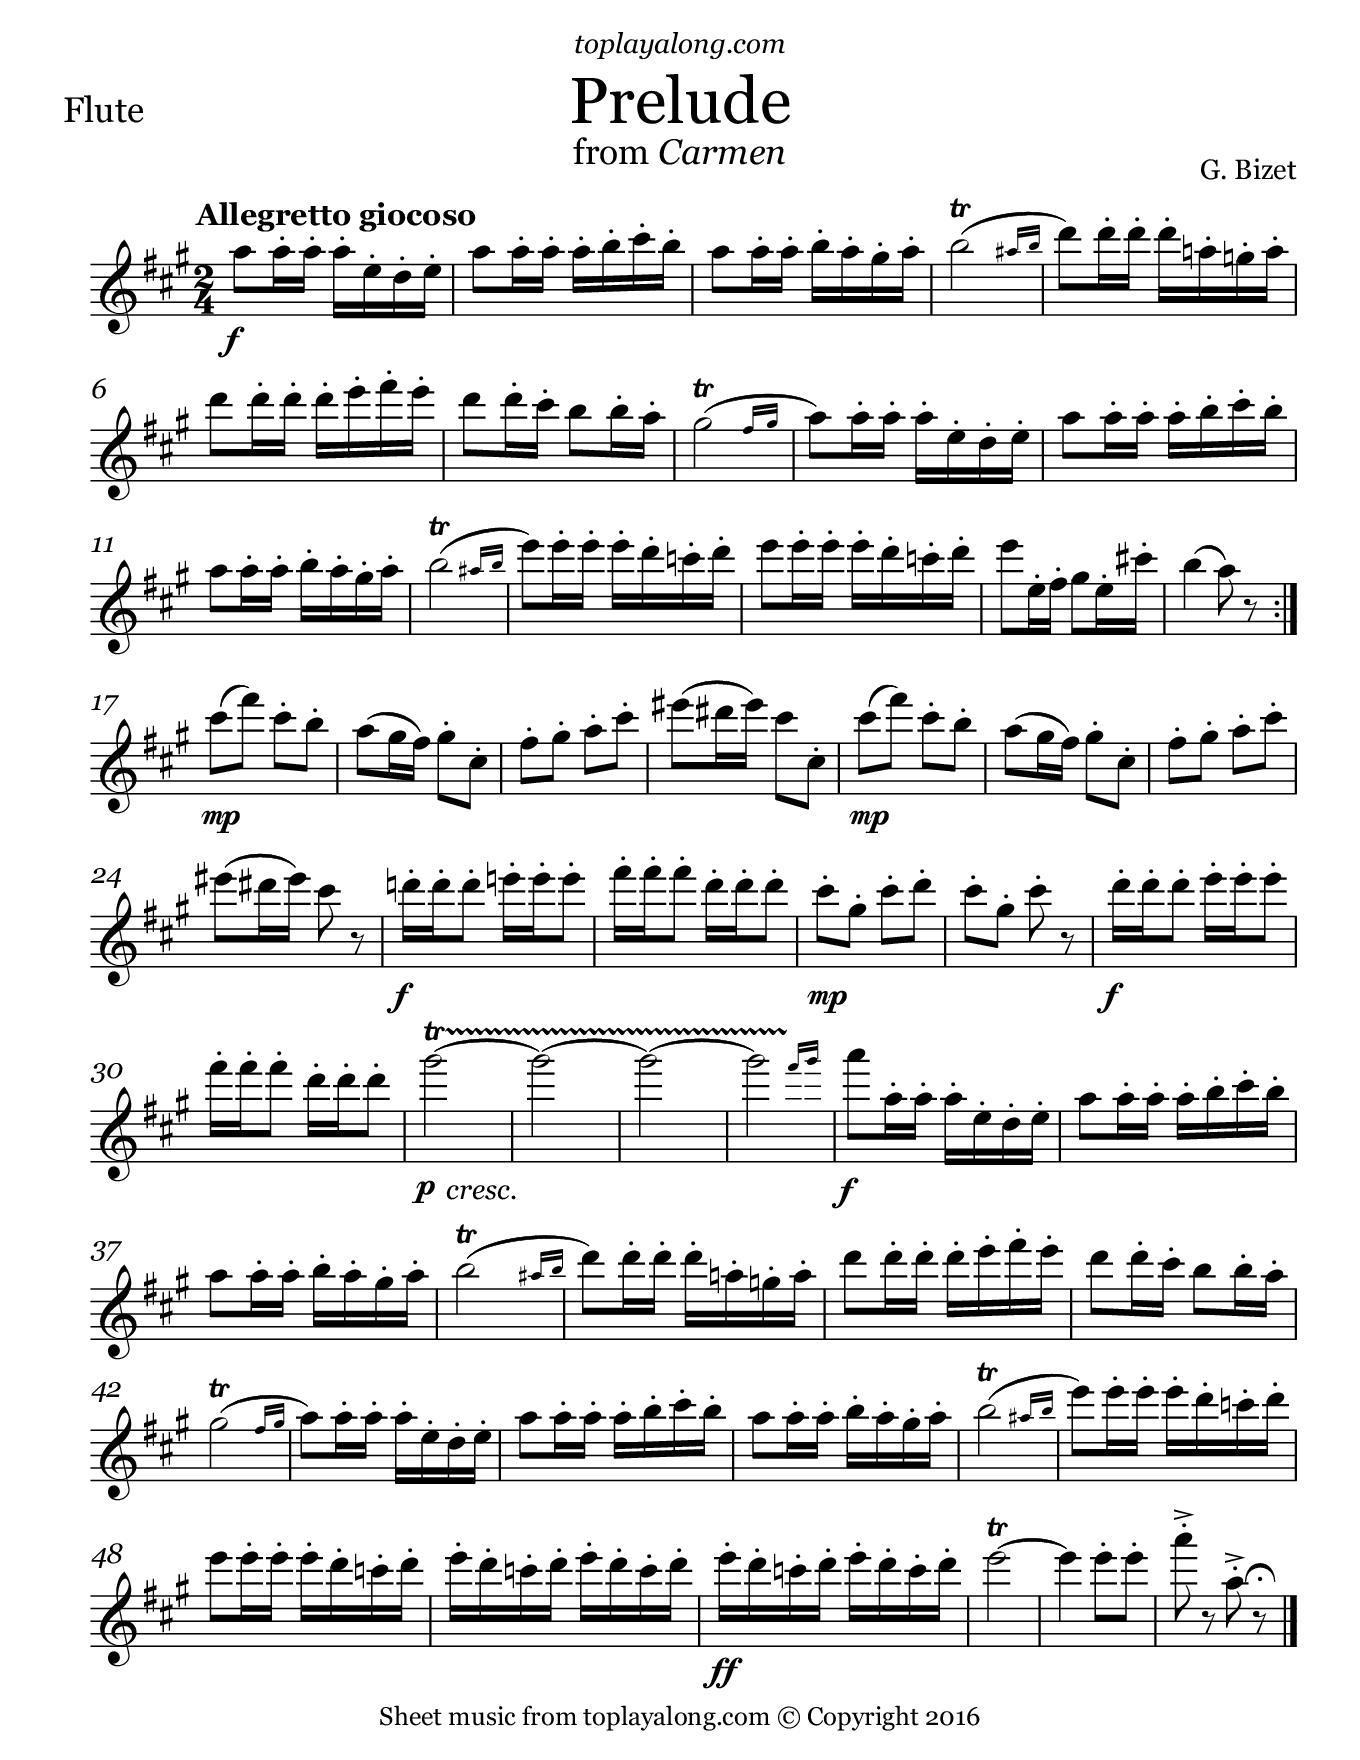 Prelude from Carmen by Bizet. Sheet music for Flute, page 1.